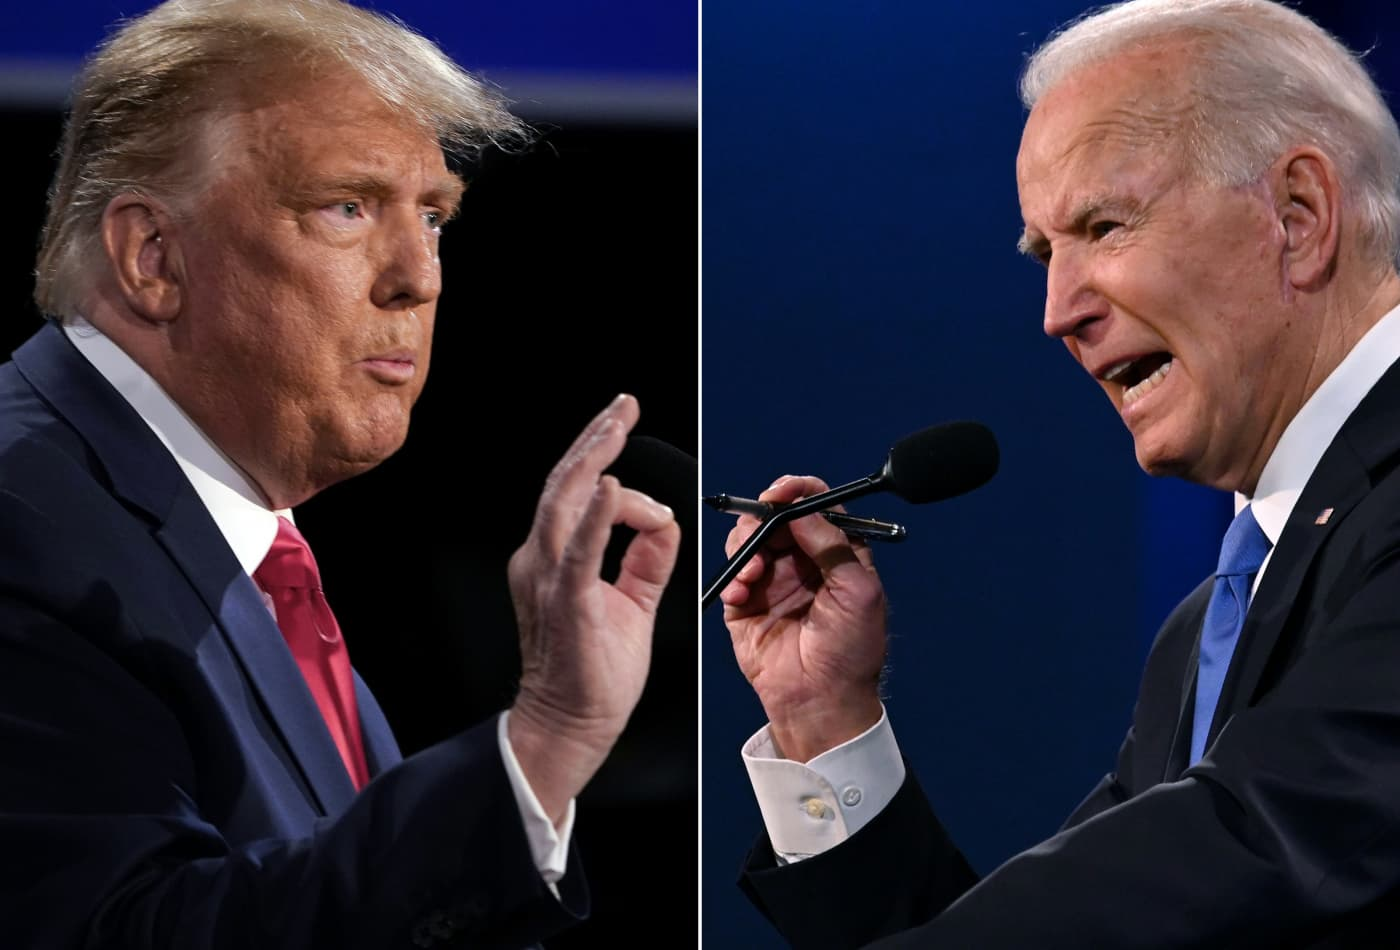 Here's how a Biden or Trump presidency would affect your personal finances